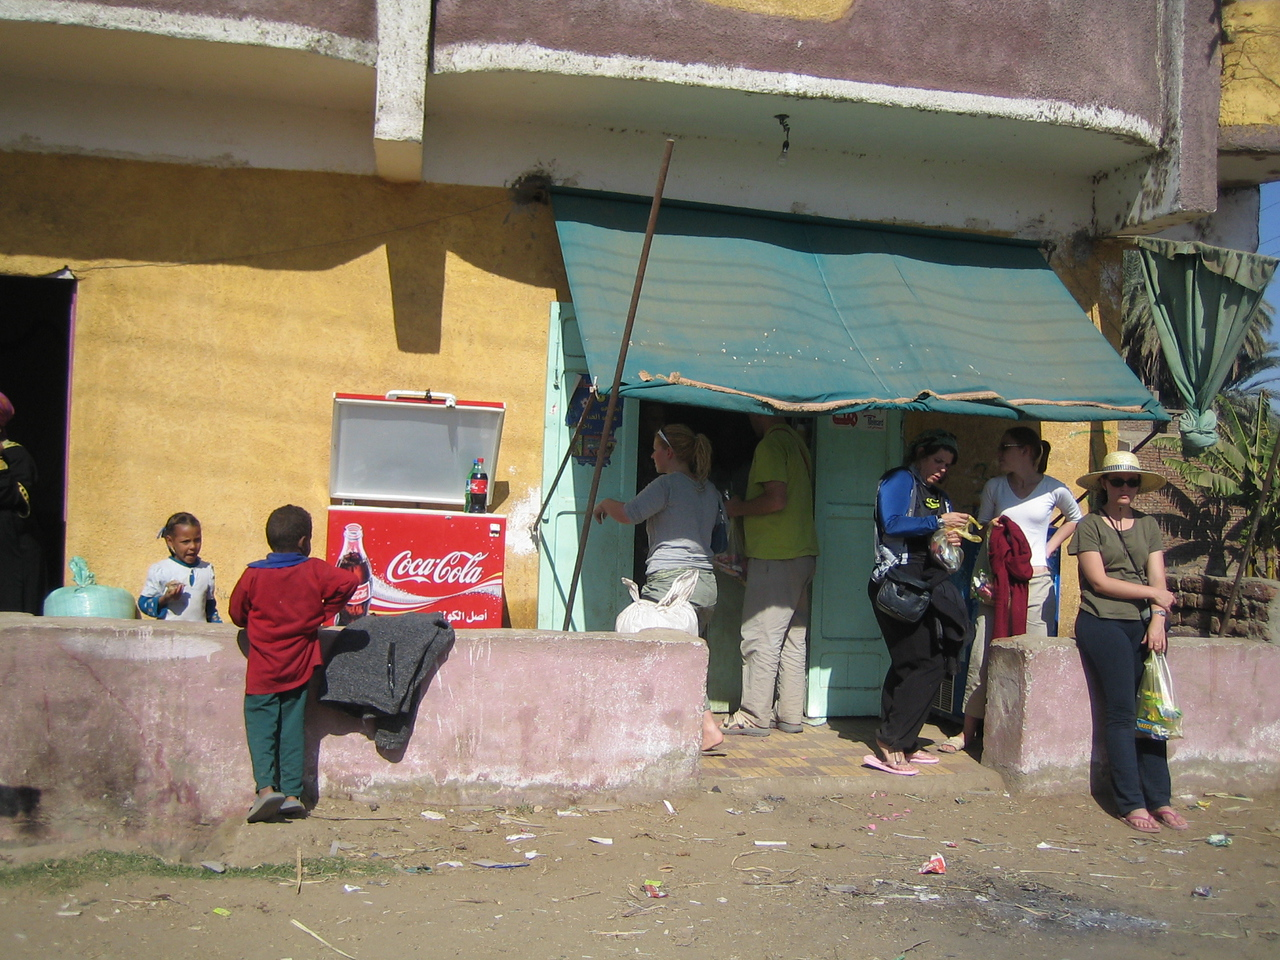 n2) We discover this house/shop which had chips and candies and go crazy buying snacks. We also use their house toilet ( I use the term toilet quite loosely here) and take turns sitting in line in their living room.